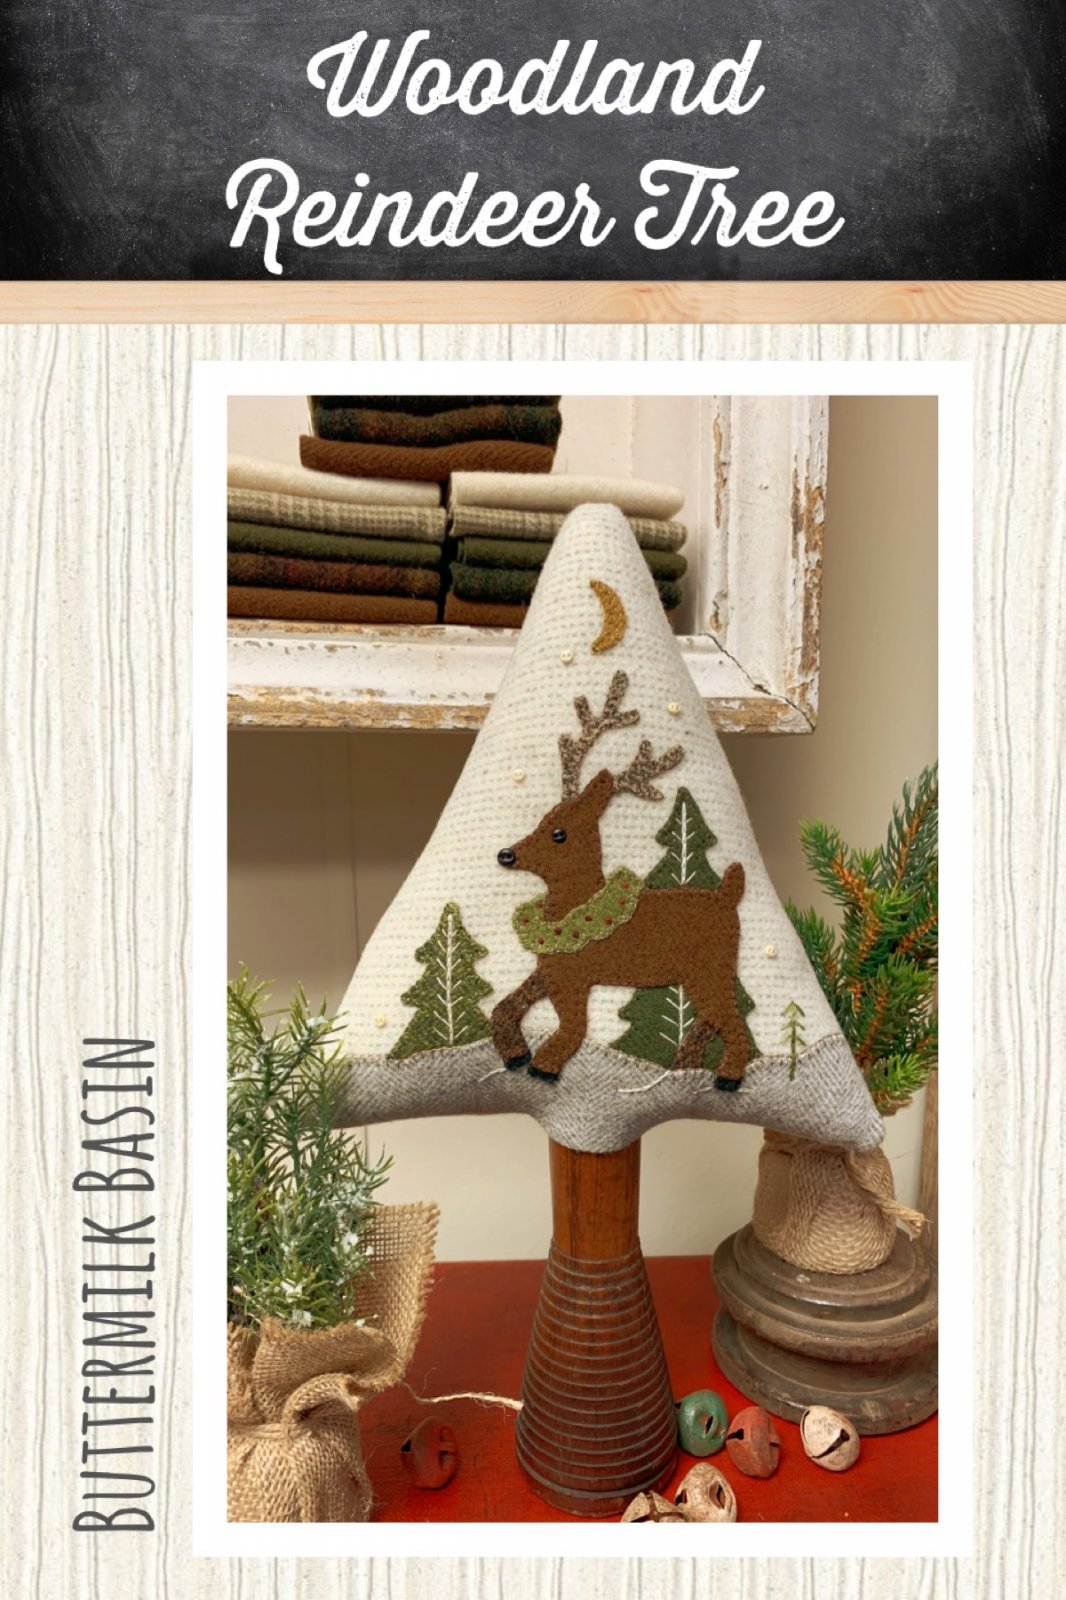 Woodland Reindeer Tree *Kit & Pattern